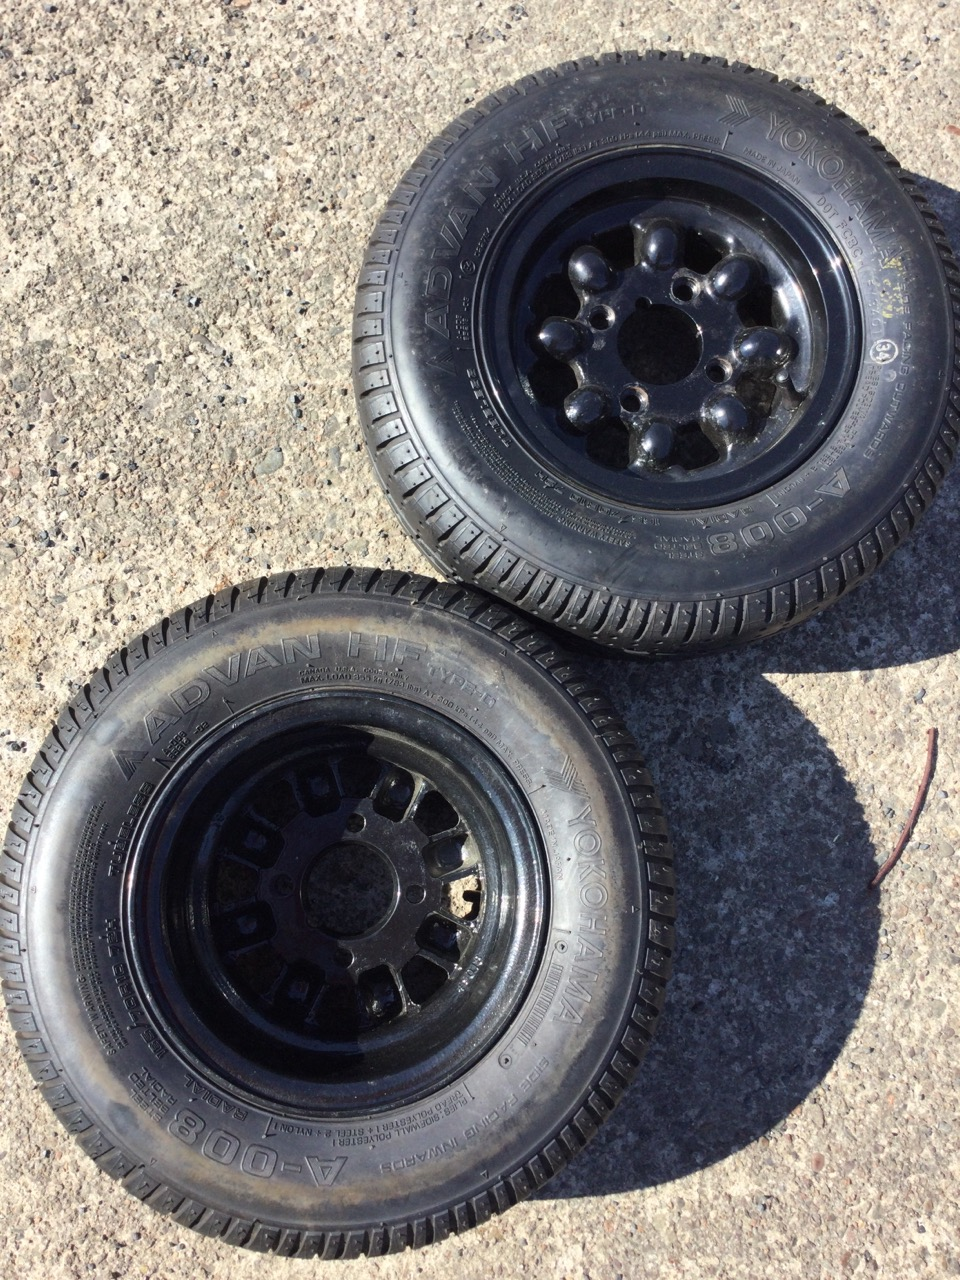 A pair of new 19in Mini Cooper wheels with Yokohama tyres. (2) - Image 3 of 3